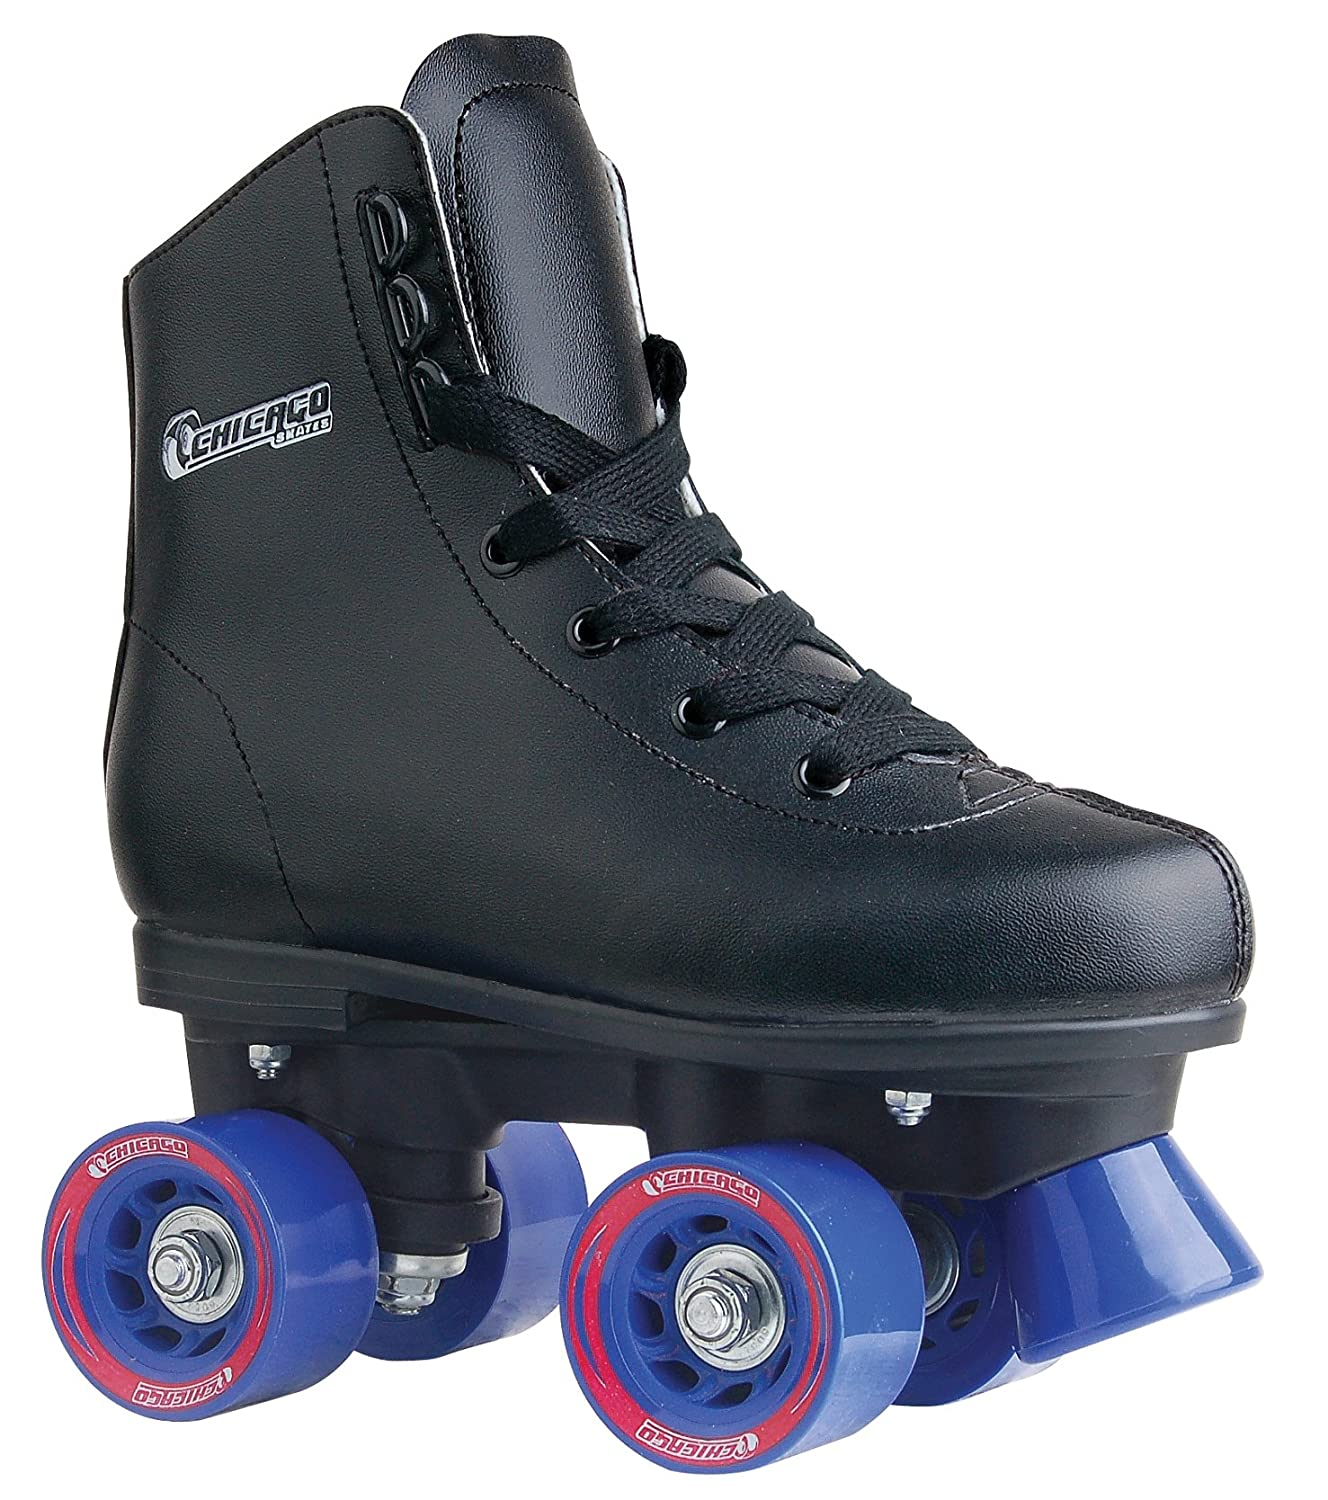 Outdoor roller skates amazon